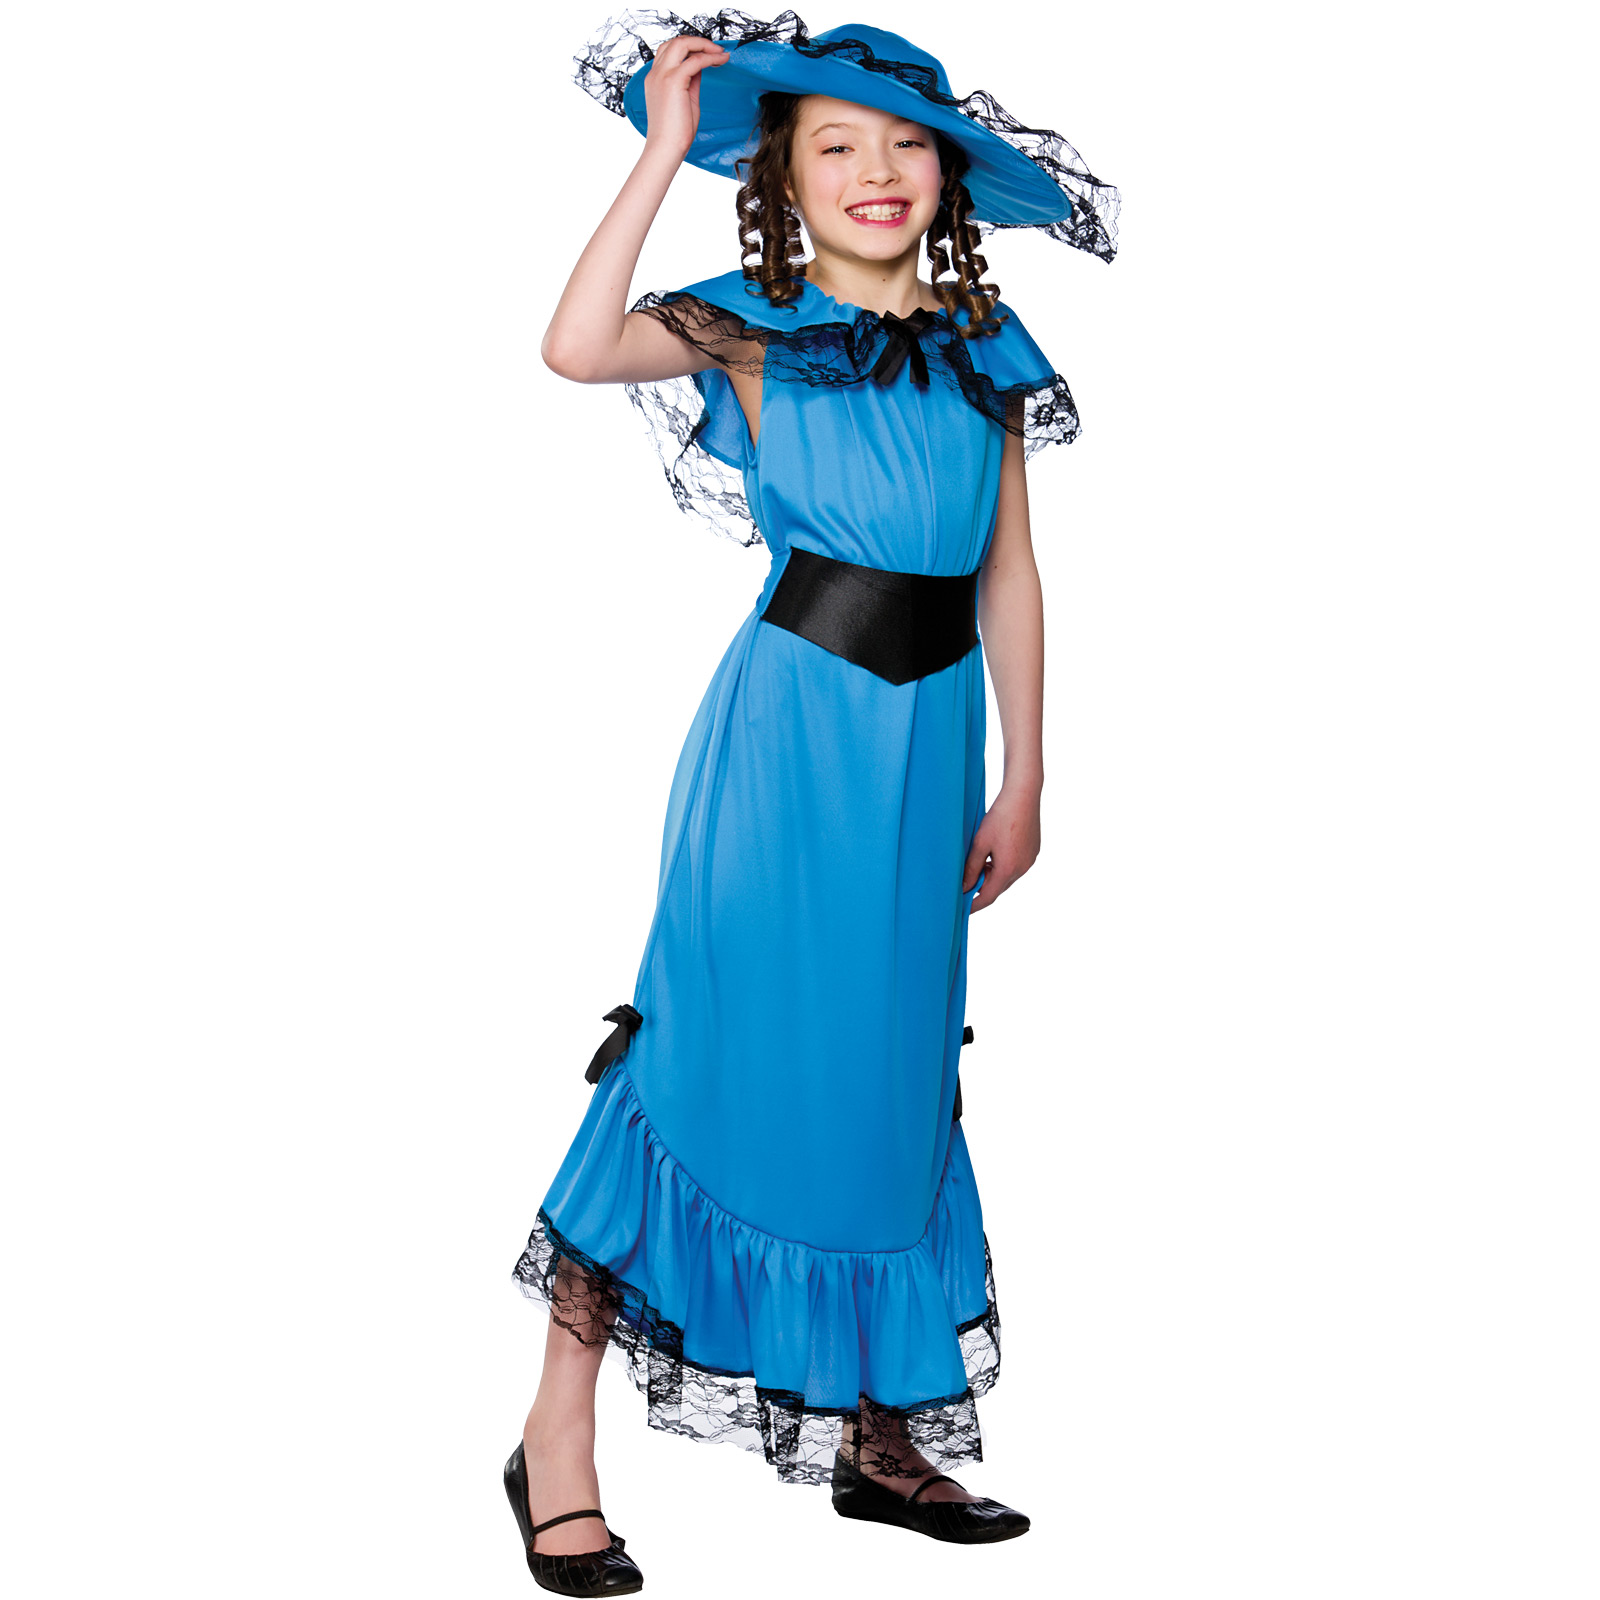 Girls Blue Victorian Lady Costume Fancy Dress Up Party Halloween Outfit Child